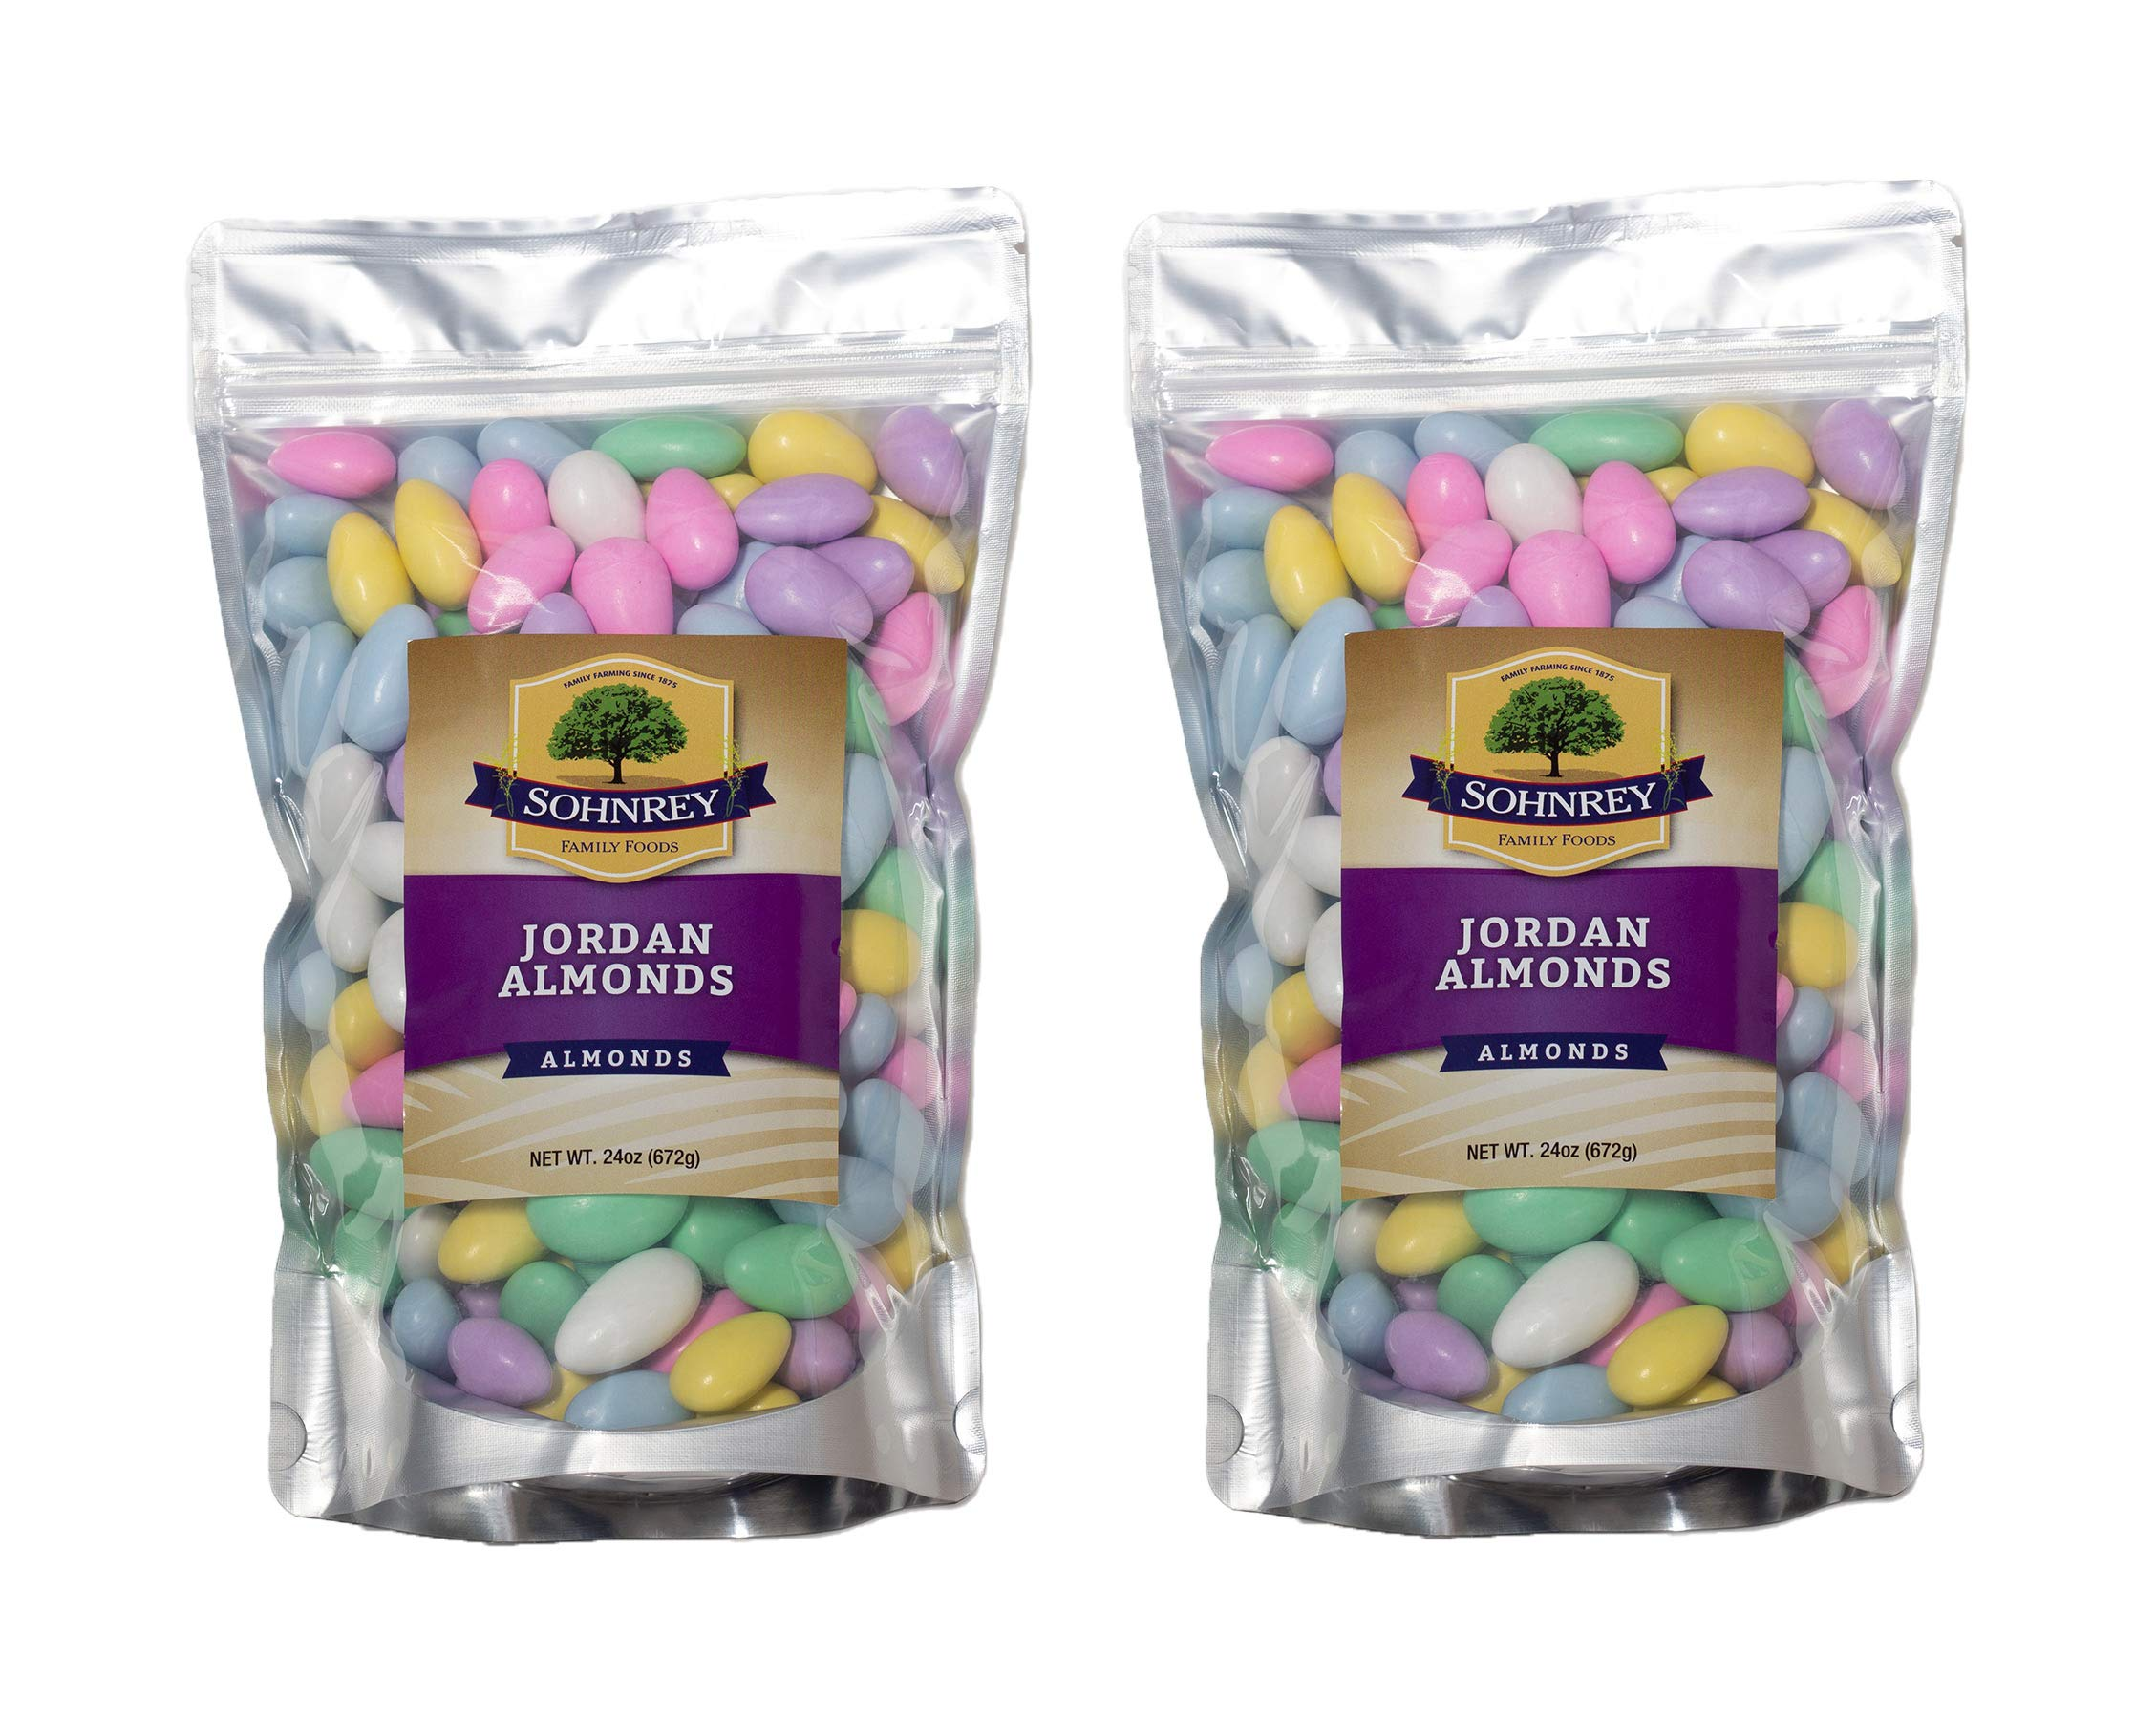 3 Pounds Jordan Almonds Wedding Holiday Party Favor Candies in Colorful Assorted Pastel Mix 2-Pack of 24 oz Pouches by Sohnrey Family Foods ... by Sohnrey Family Foods